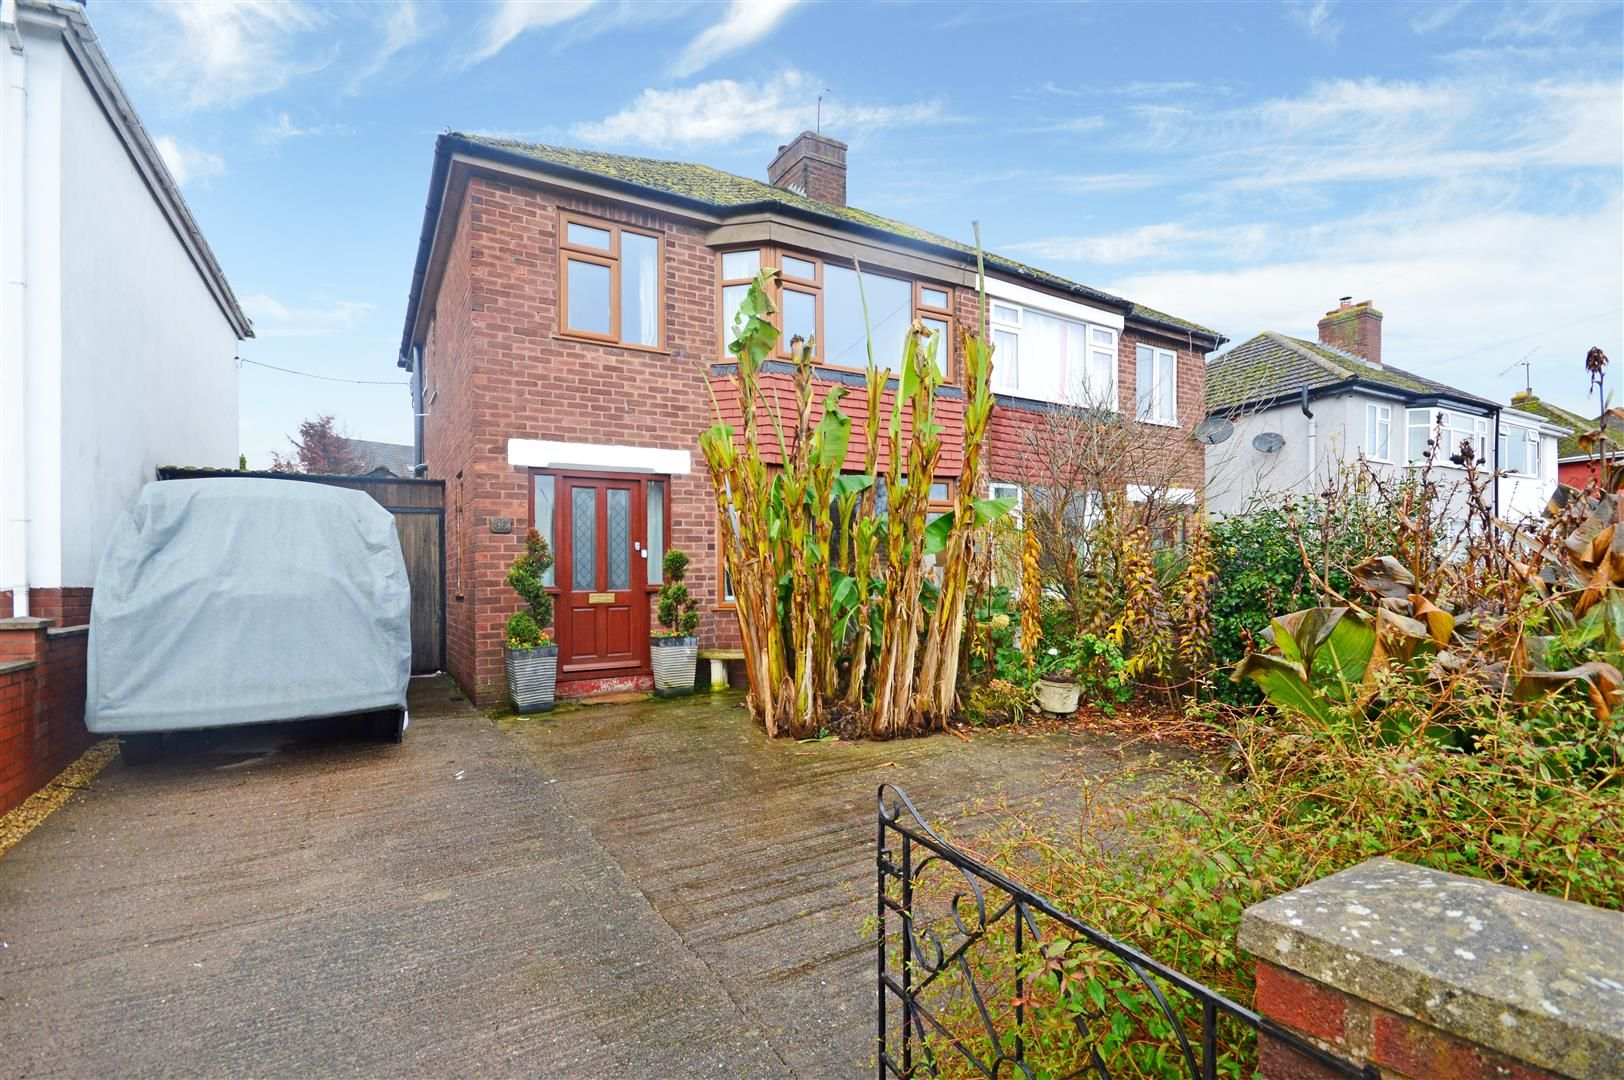 3 bed semi-detached for sale in Hereford 1